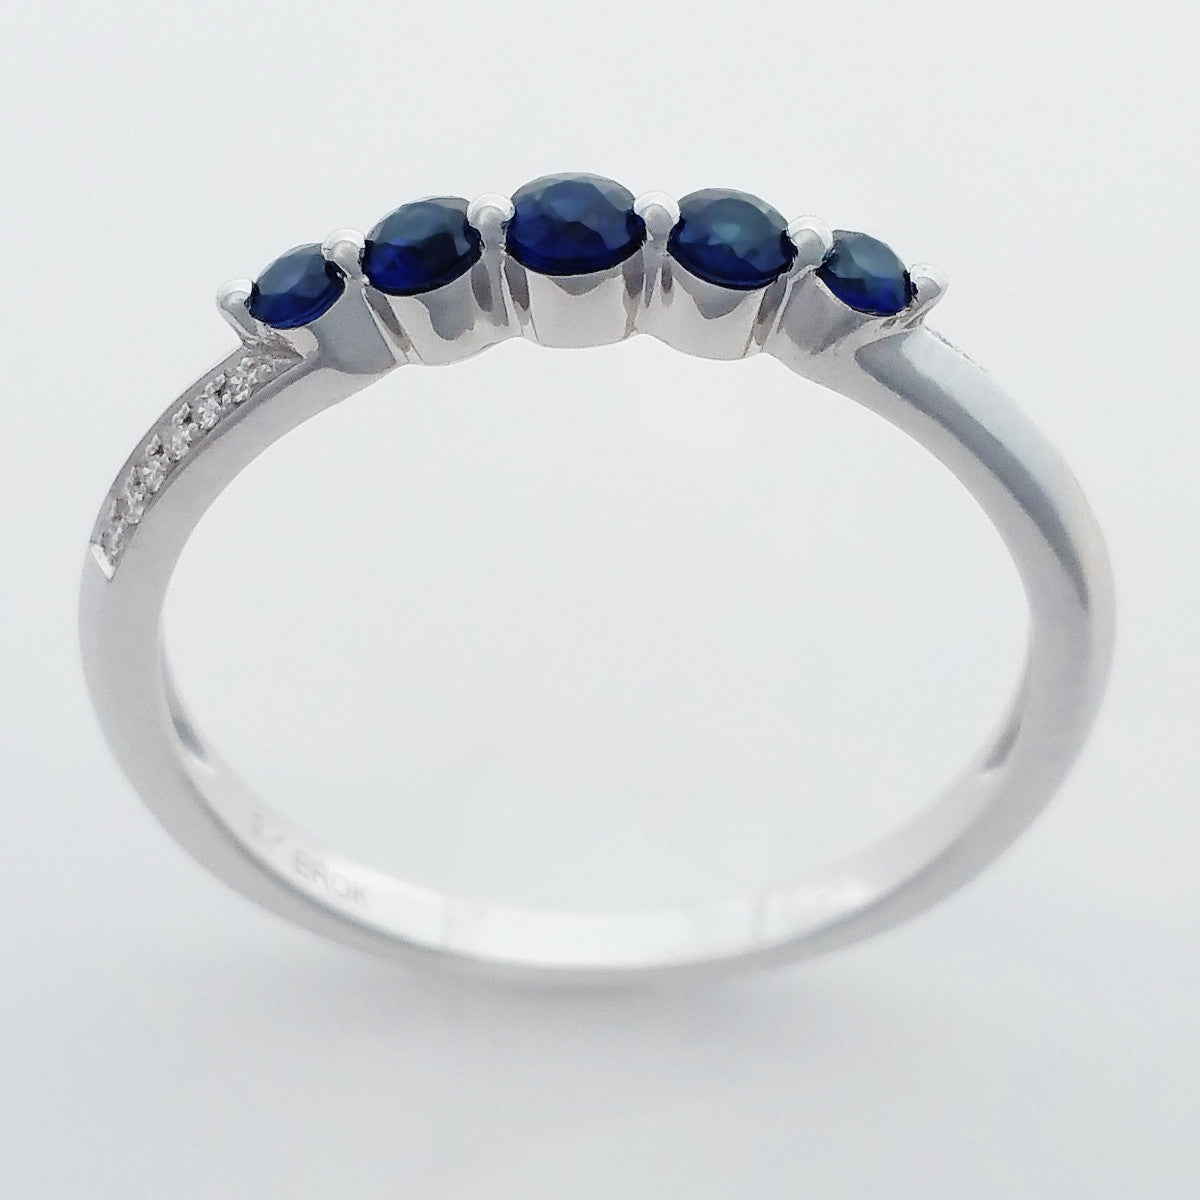 9K SOLID WHITE GOLD 0.30CT NATURAL AUSTRALIAN SAPPHIRE RING WITH 12 DIAMONDS.